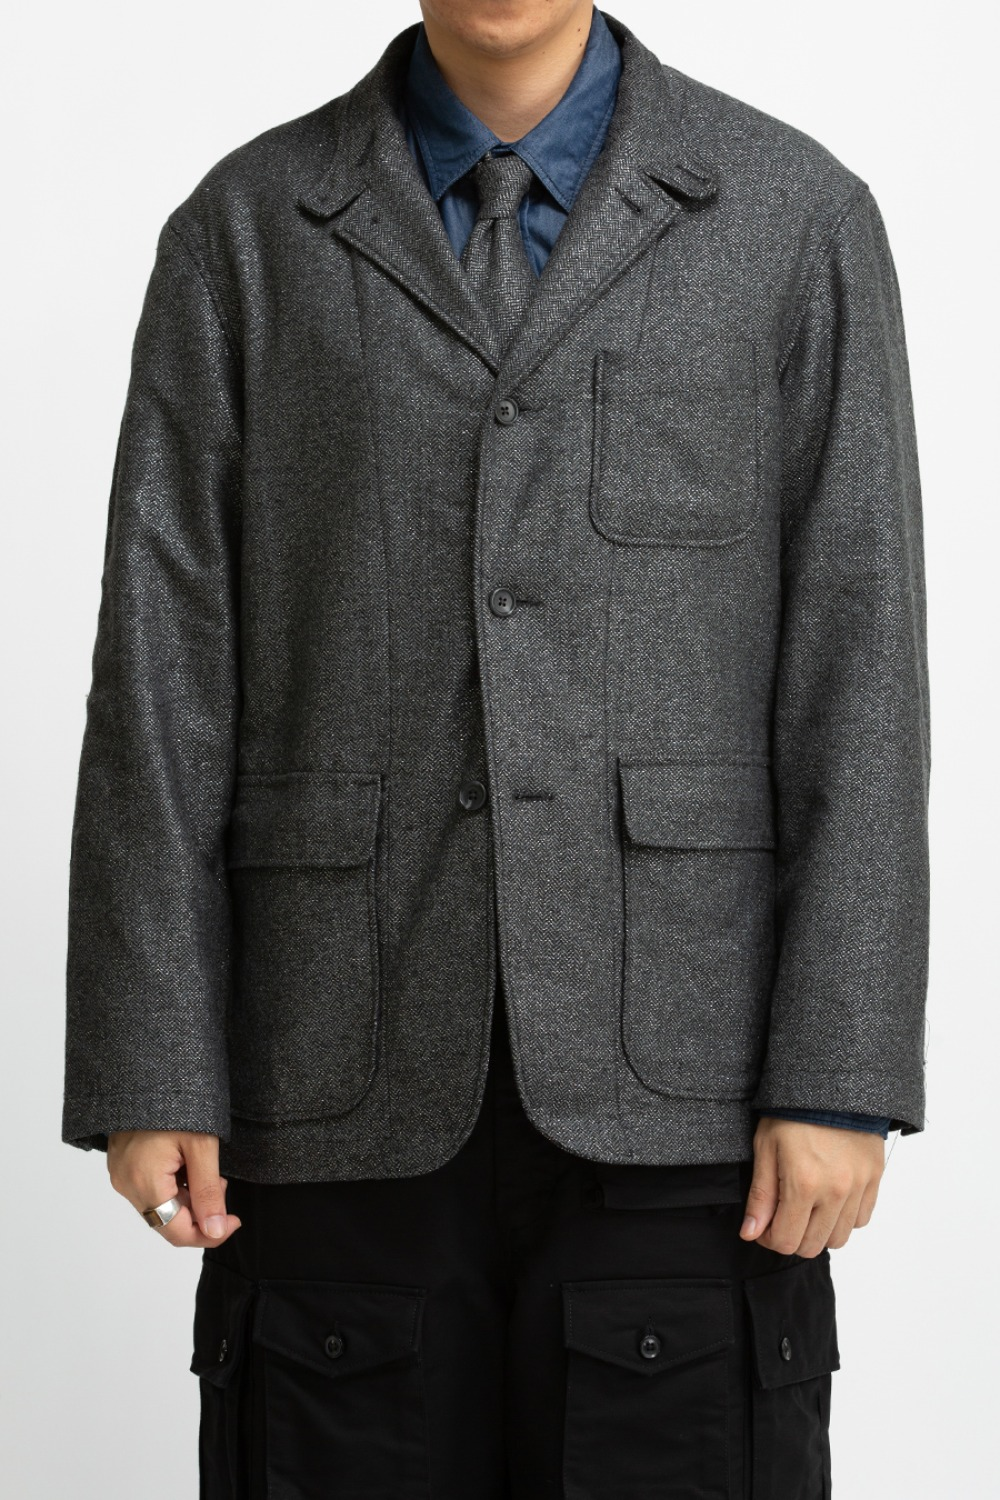 LOITER JACKET GREY WOOL POLY LUREX HERRINGBONE